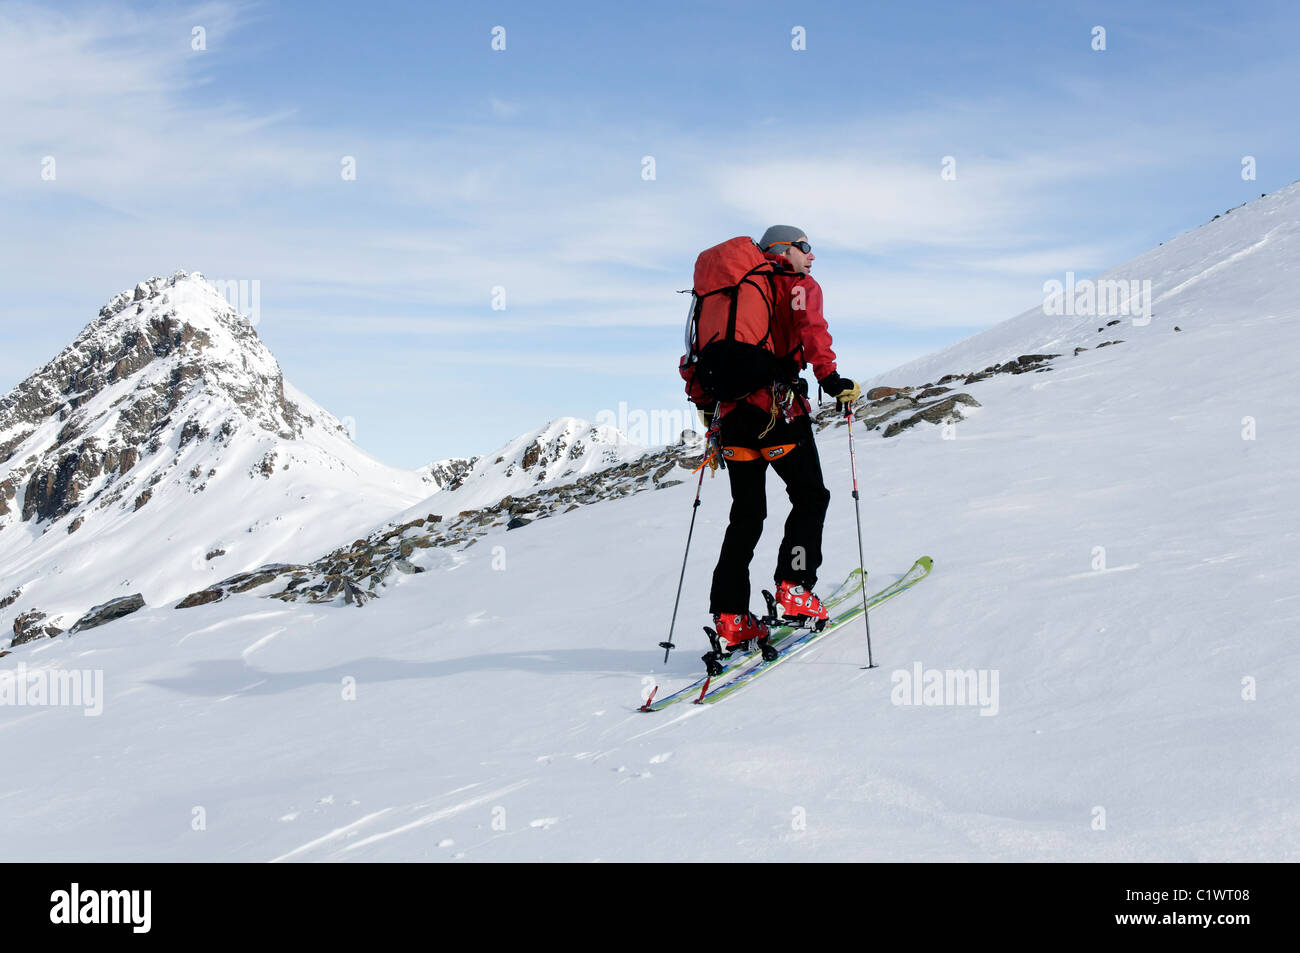 Ski touring in the Silvretta region of Austria Stock Photo